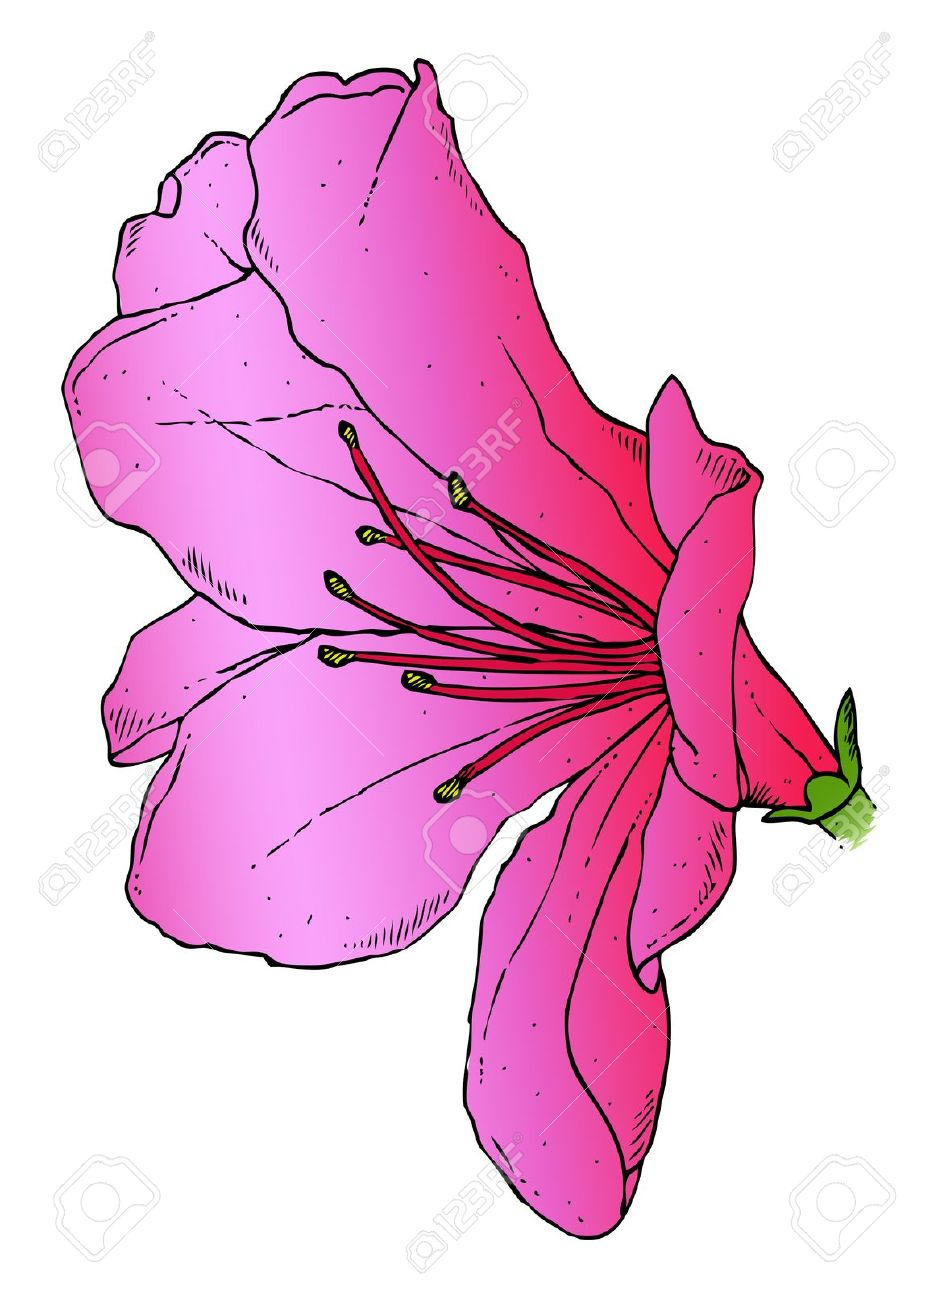 A Realistic Drawing Of A Pink Azalea Royalty Free Cliparts.